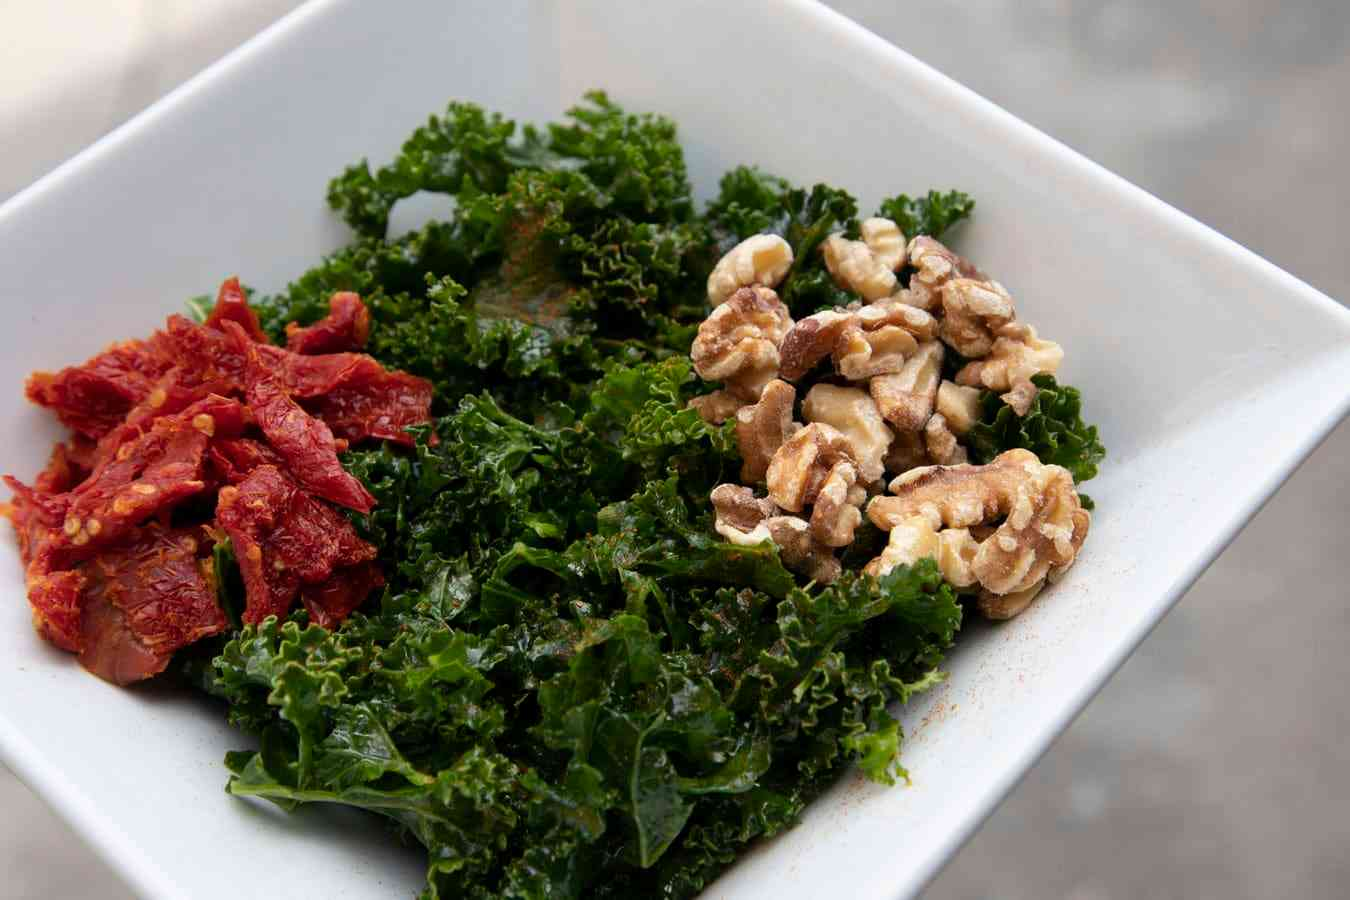 The Naughty Kale Salad